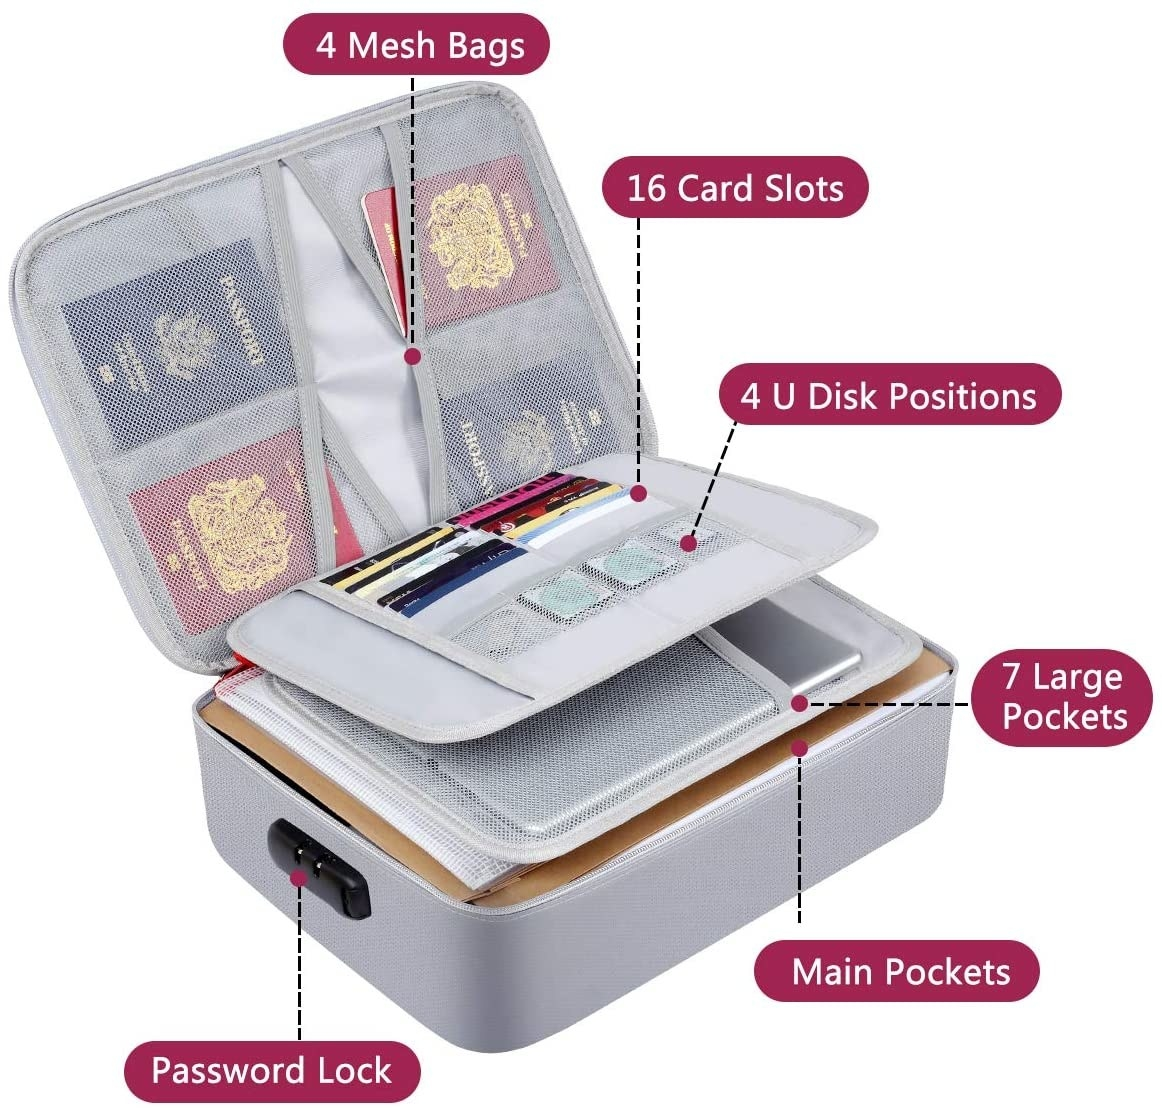 Graphic of bag with labels pointing out features like a password lock, main pockets, seven large pockets, four U disk positions, 16 card slots, and four mesh bags